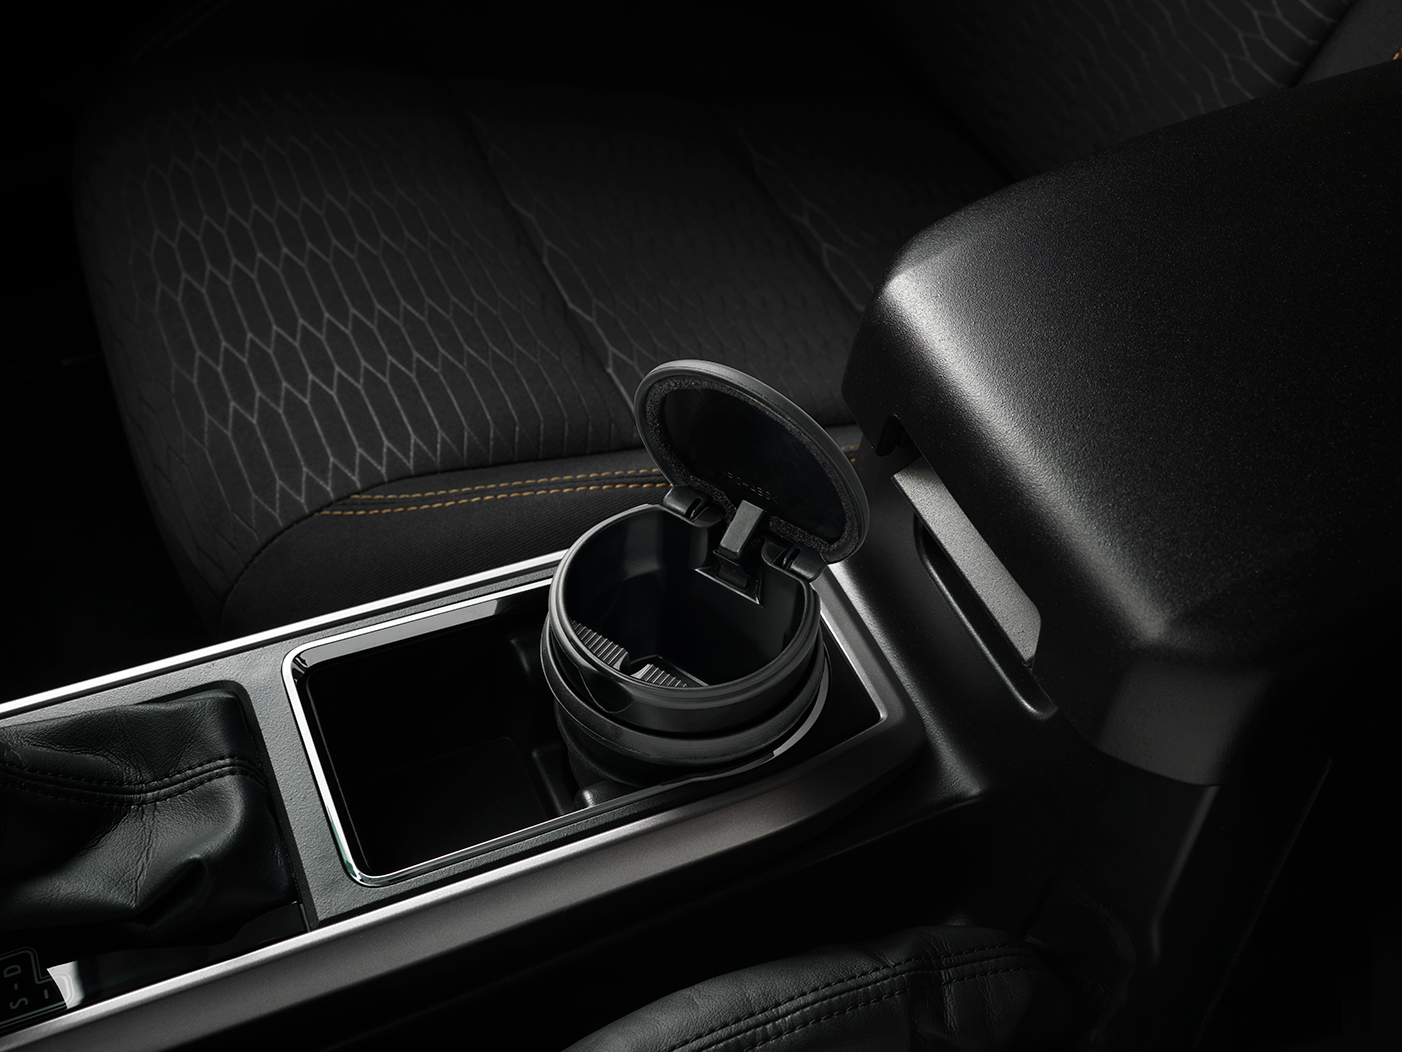 Model Features of the 2020 Toyota Tacoma at Tri County Toyota in Royersford   The cup holder of the 2020 Tacoma